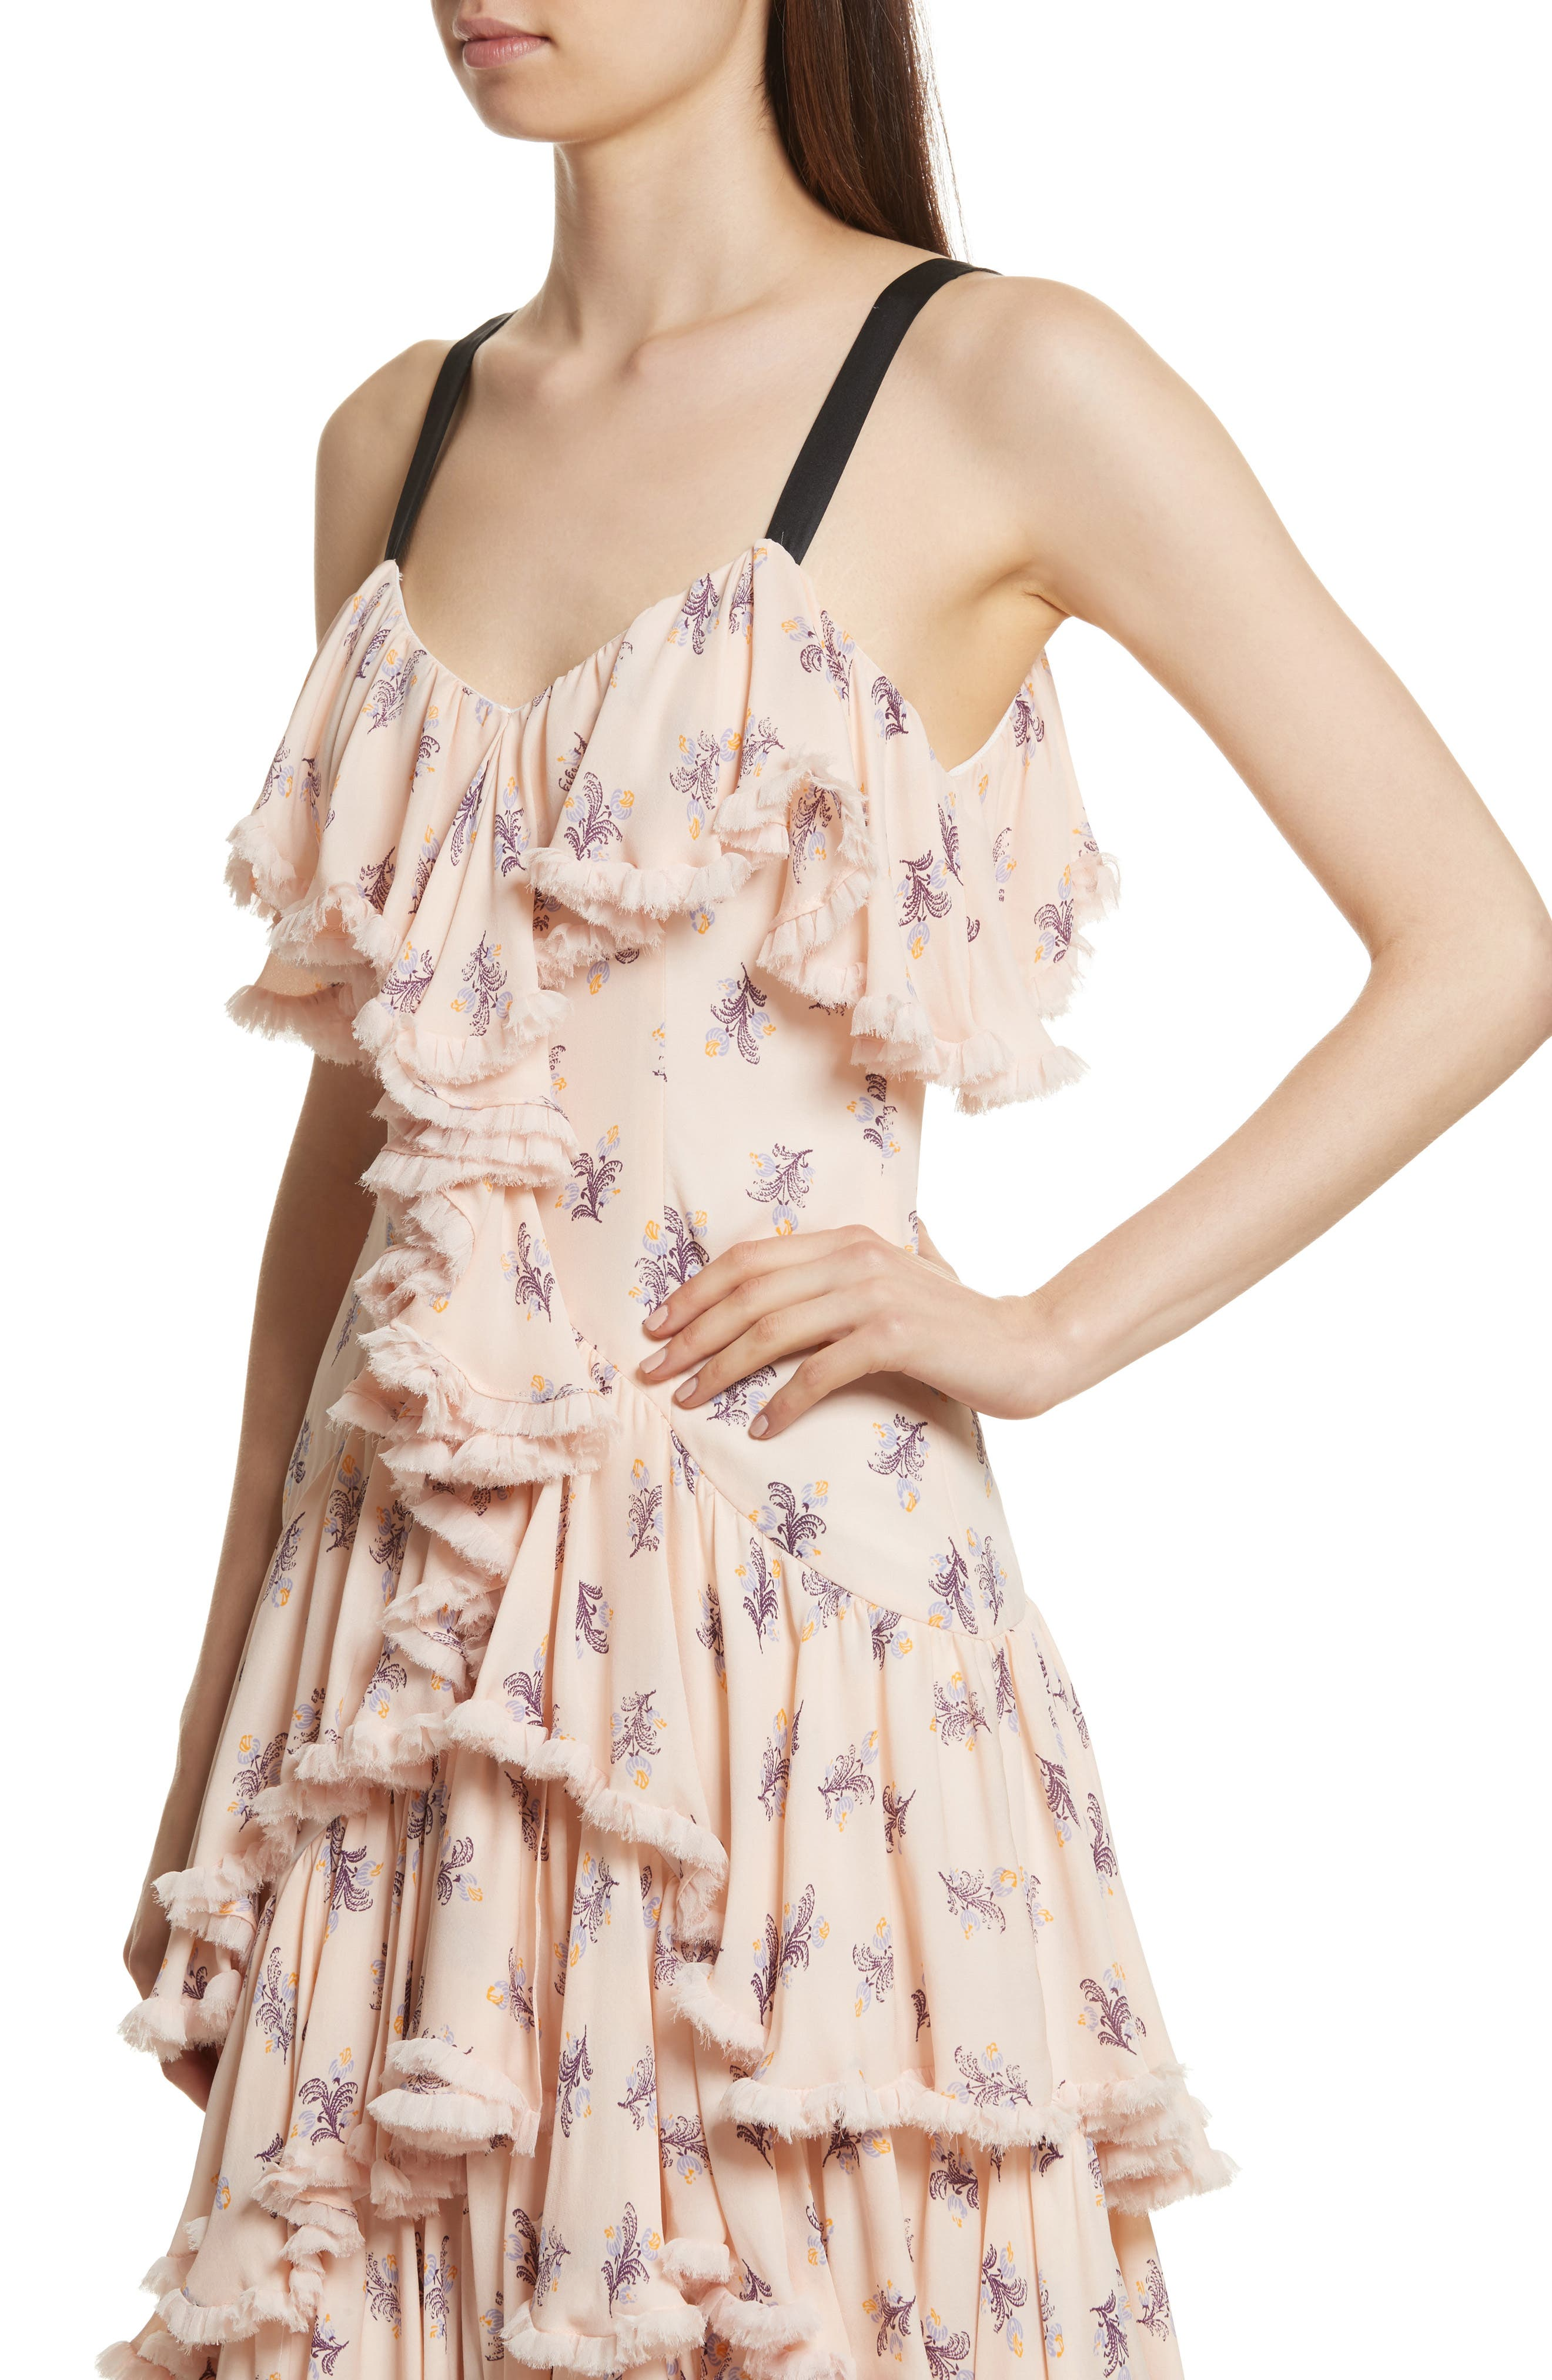 Edie Floral Print Tiered Silk Dress,                             Alternate thumbnail 4, color,                             Pearl Blush Multi